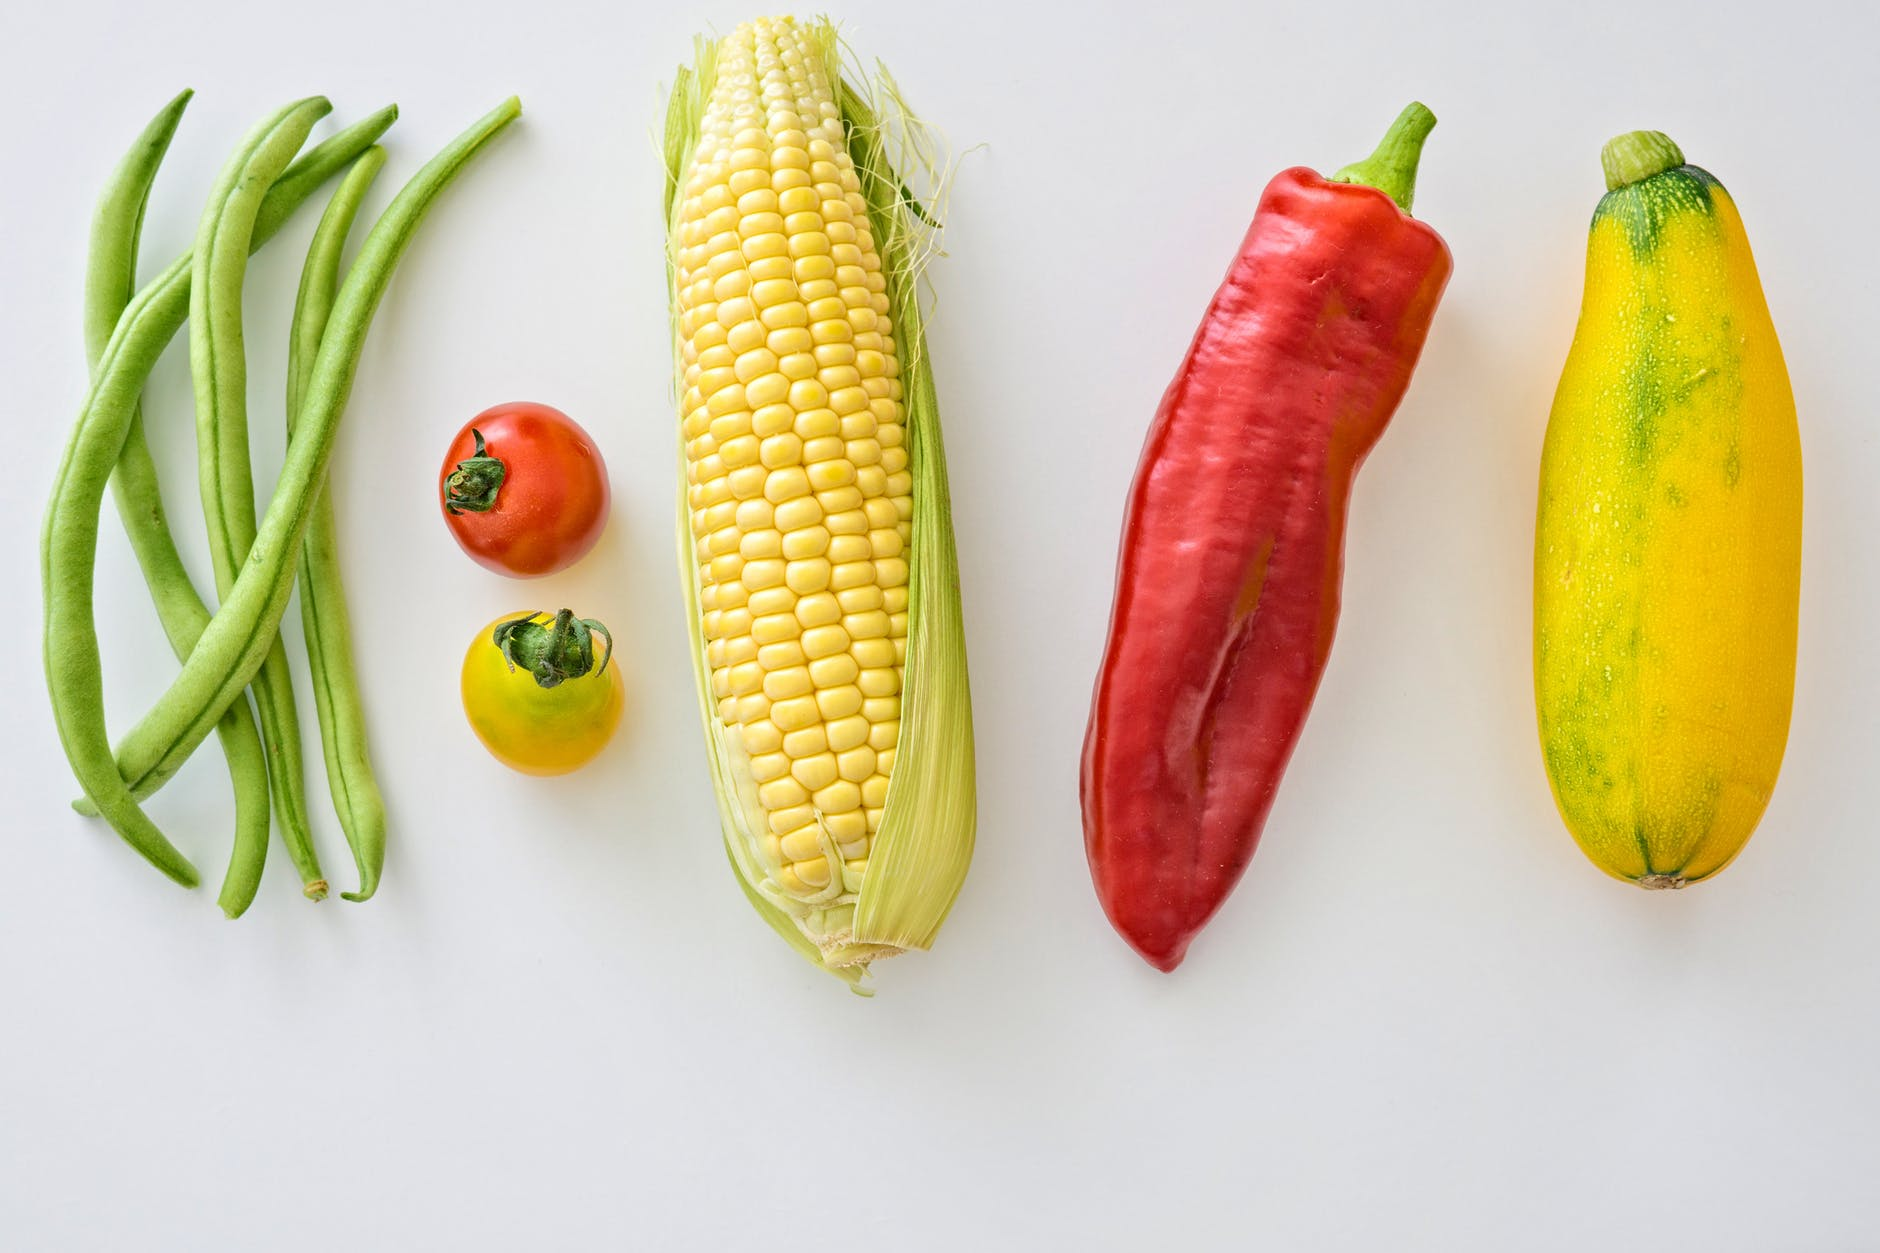 Vegetables-Fruits and vegetables are a great way to increase Vitamin C levels.